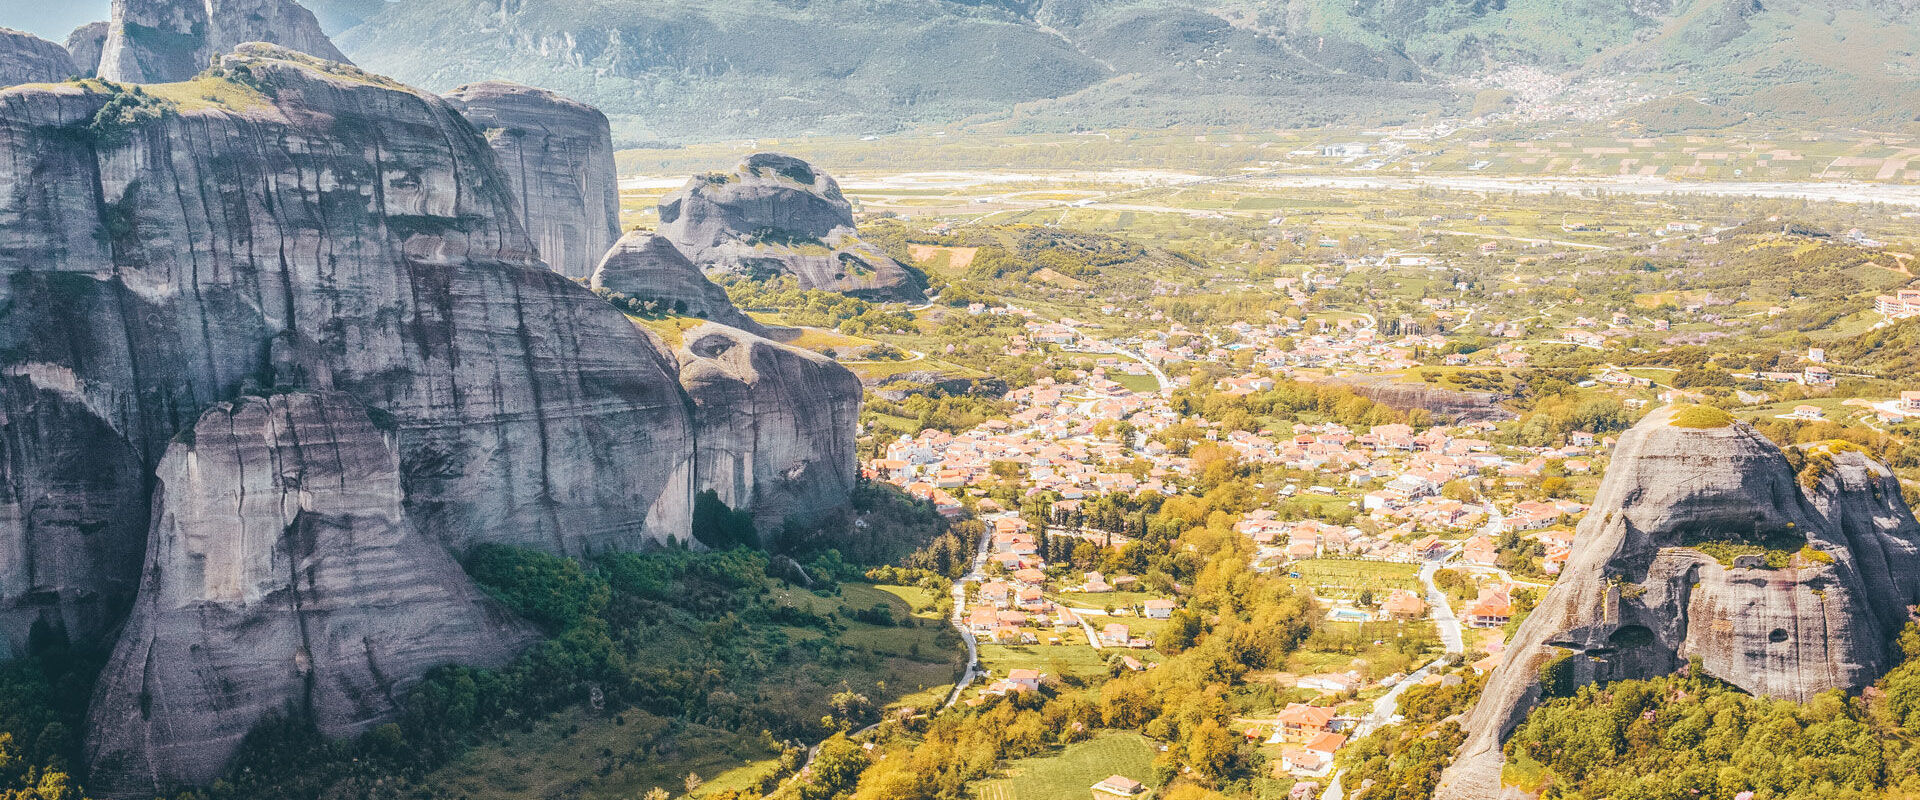 The magical landscape of the Meteora monasteries and rock formations takes you on yet another journey with the experience of rafting down the Pinios River